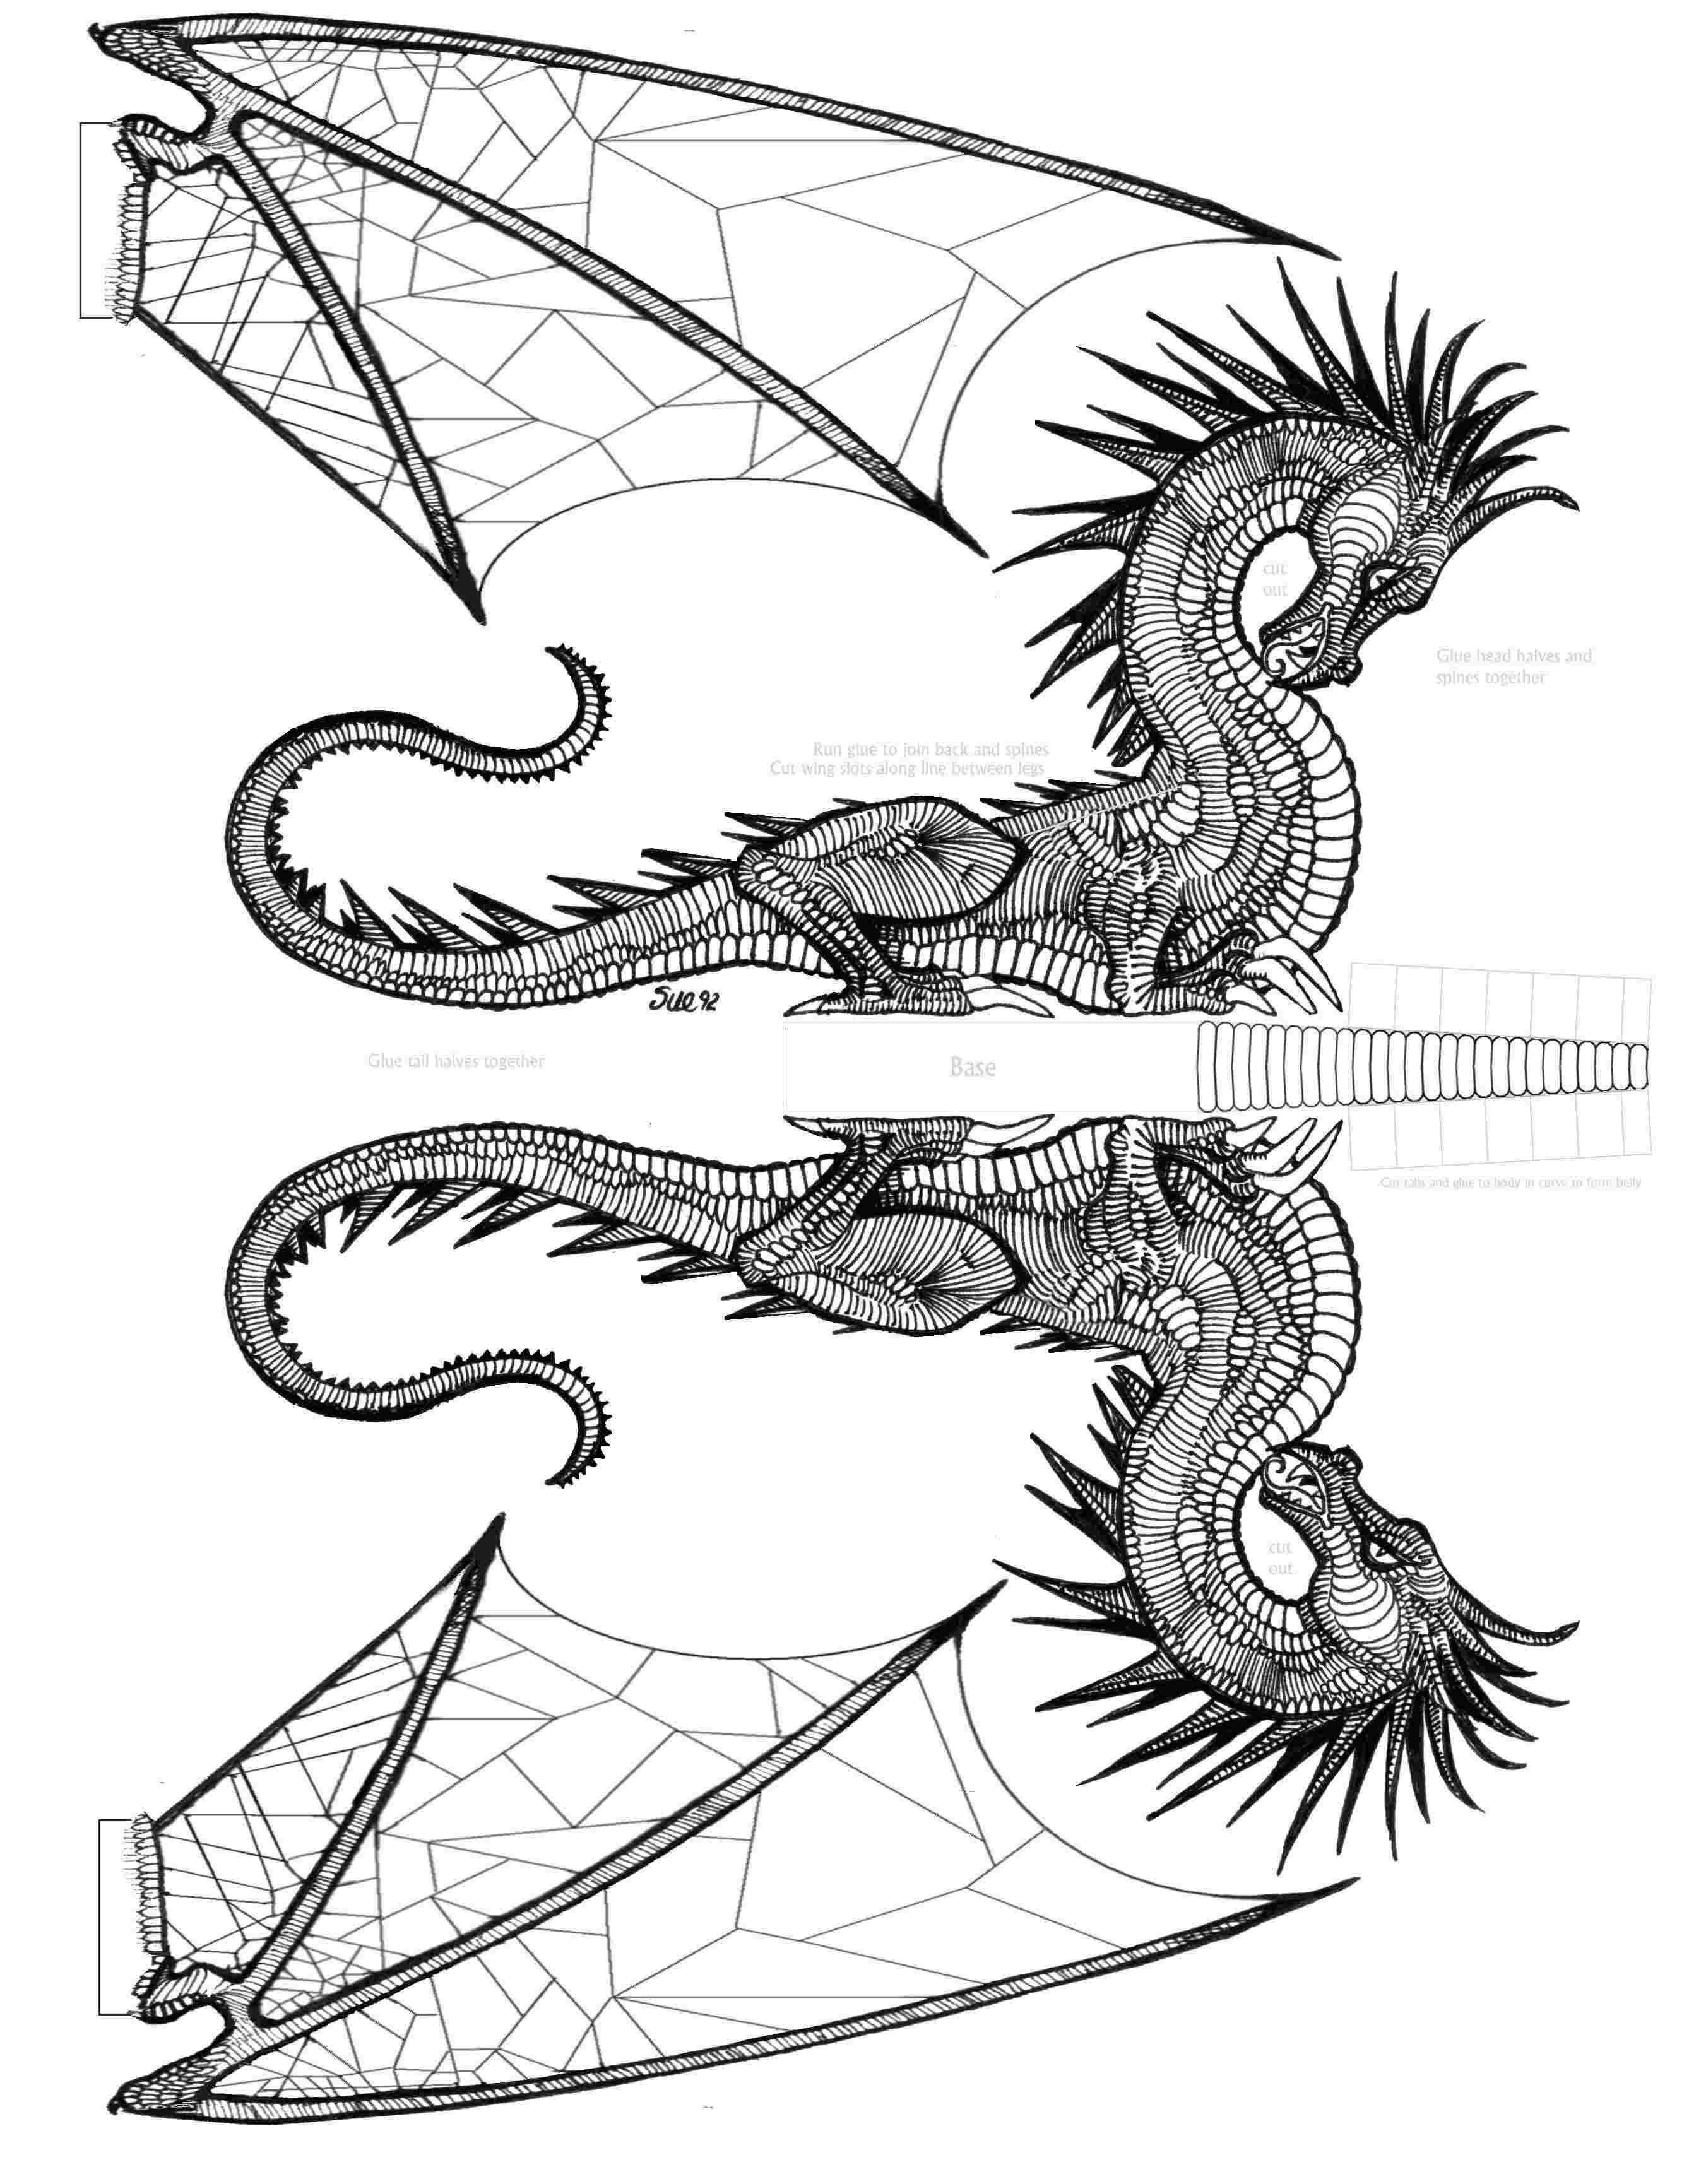 Link to large cutout dragon link to large cutout dragon